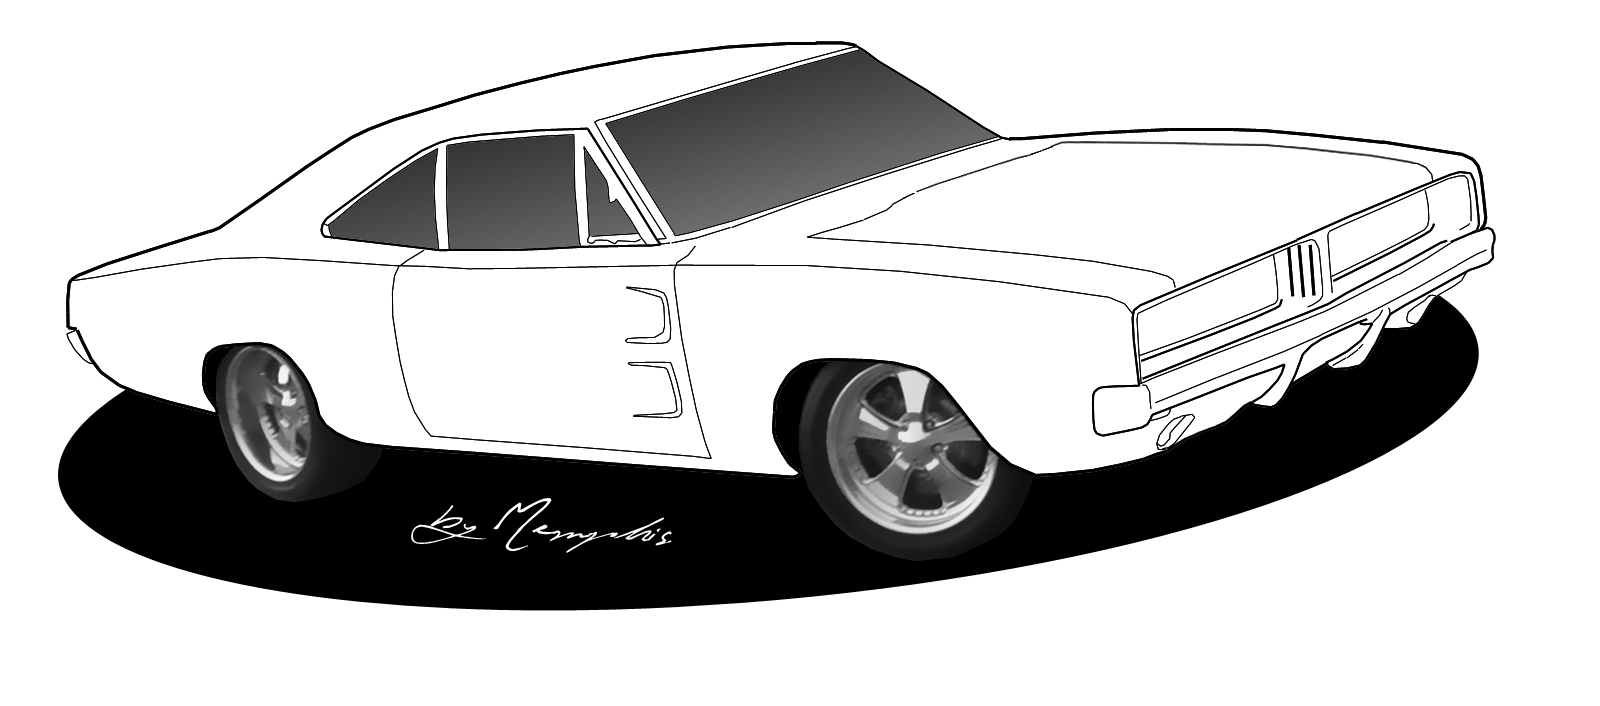 muscle car coloring pages muscle car coloring pages to download and print for free coloring pages muscle car